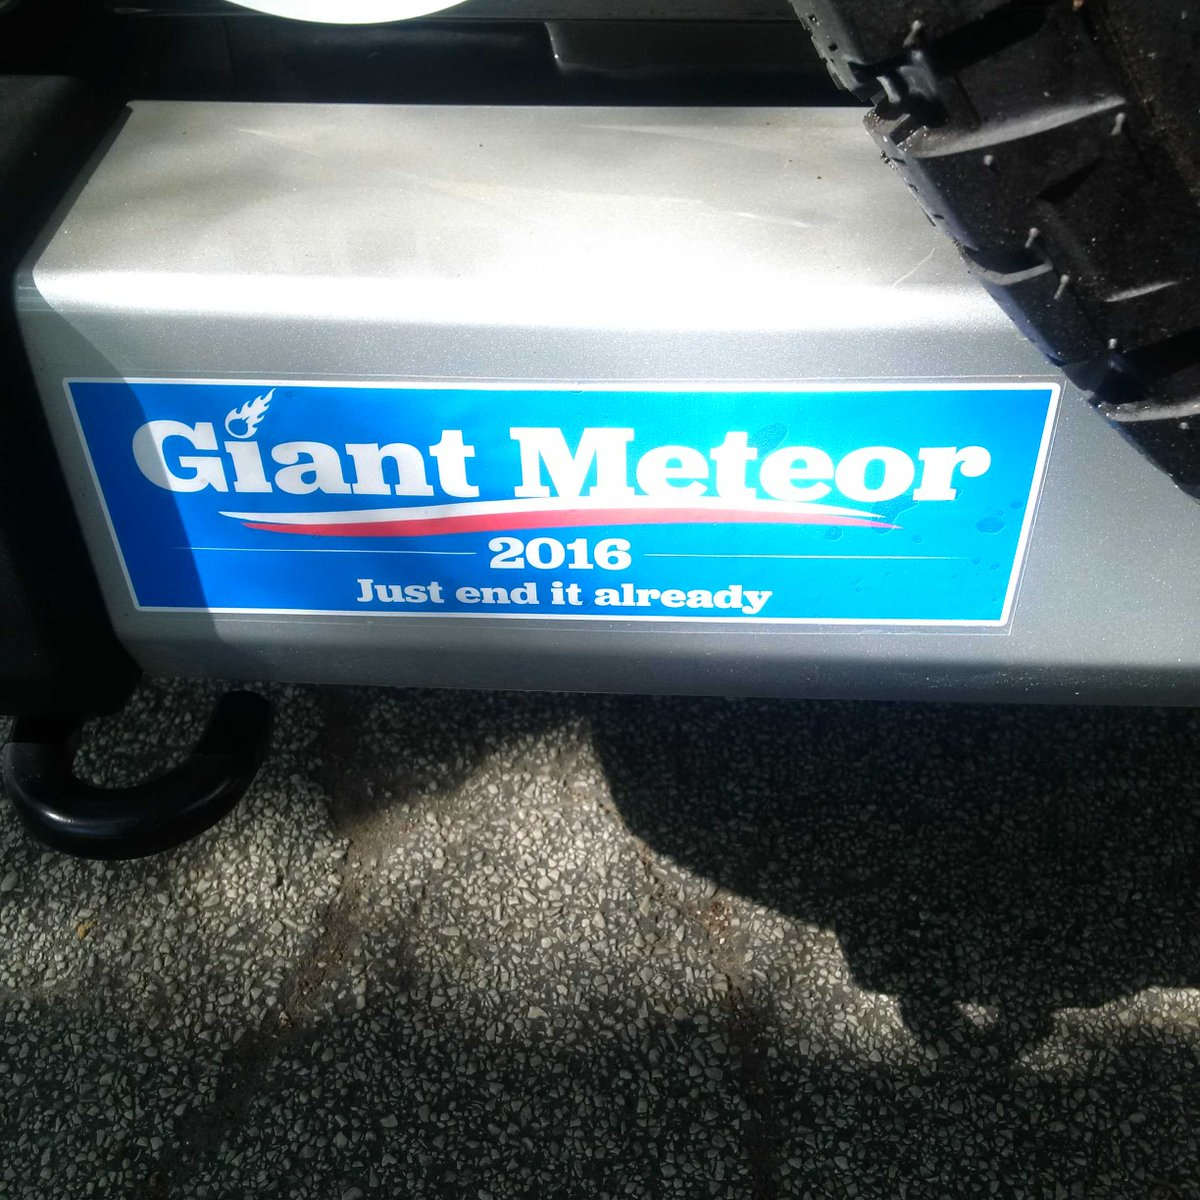 Best political bumper sticker I've seen this election cycle... https://t.co/Zng0mufnW3